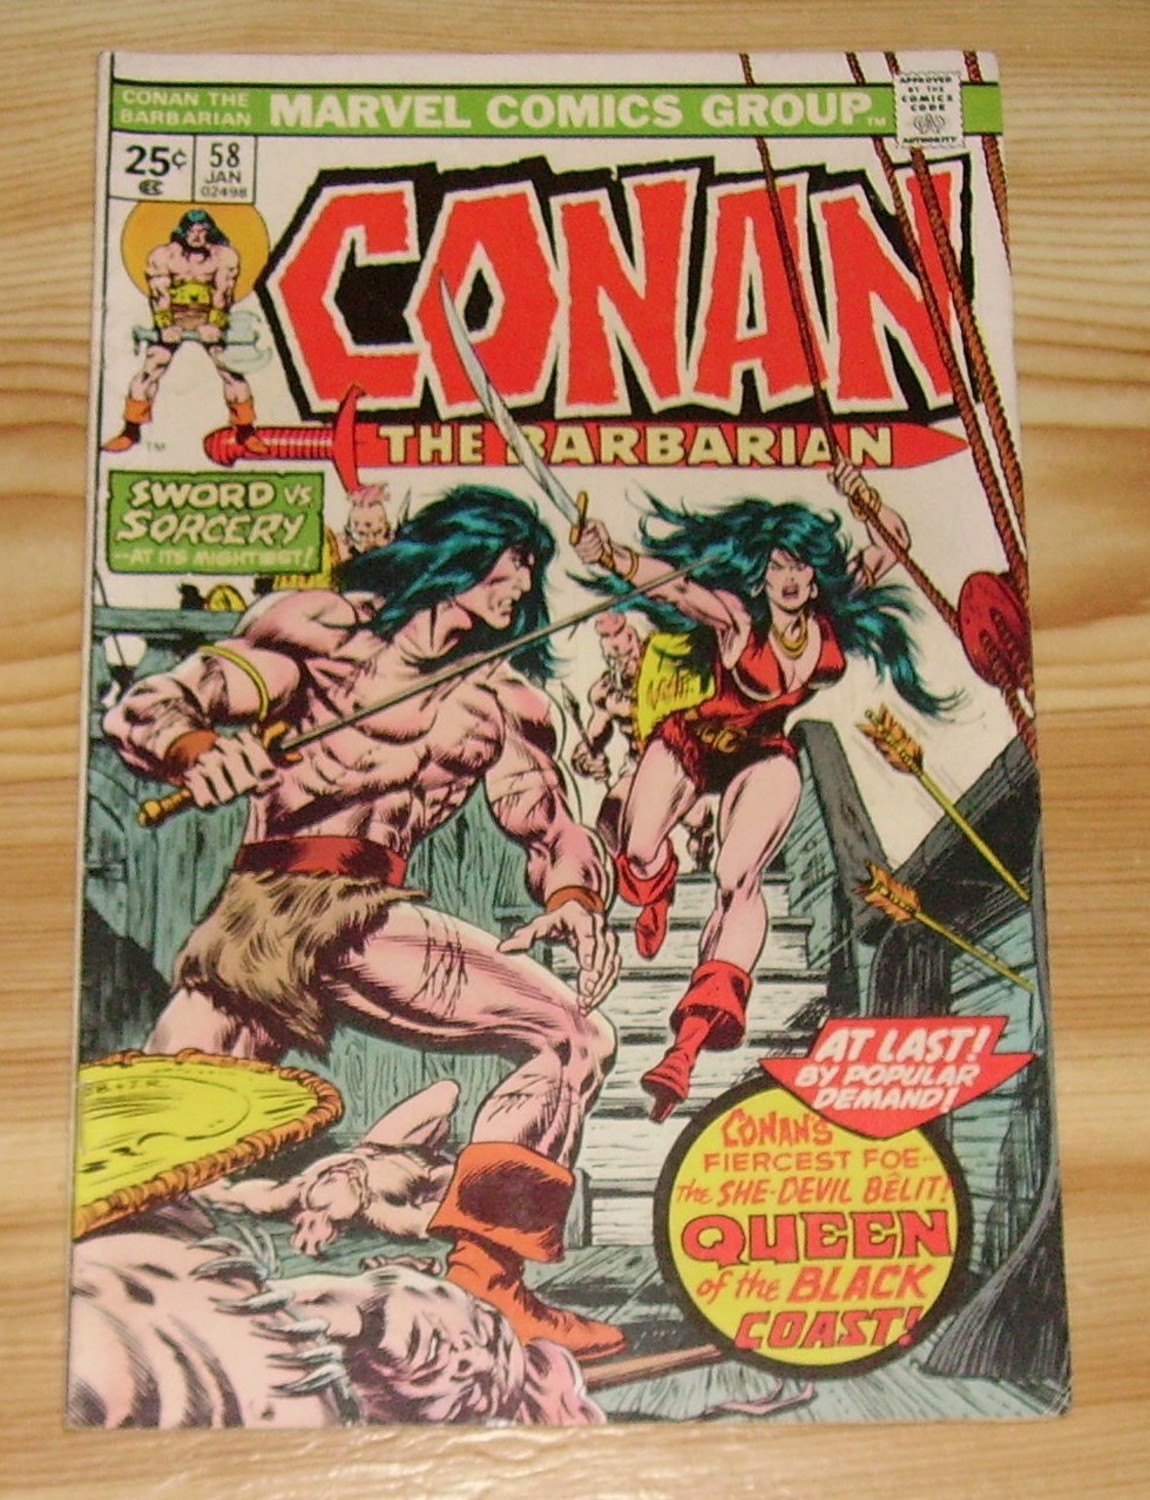 Conan the Barbarian #58 (1976)